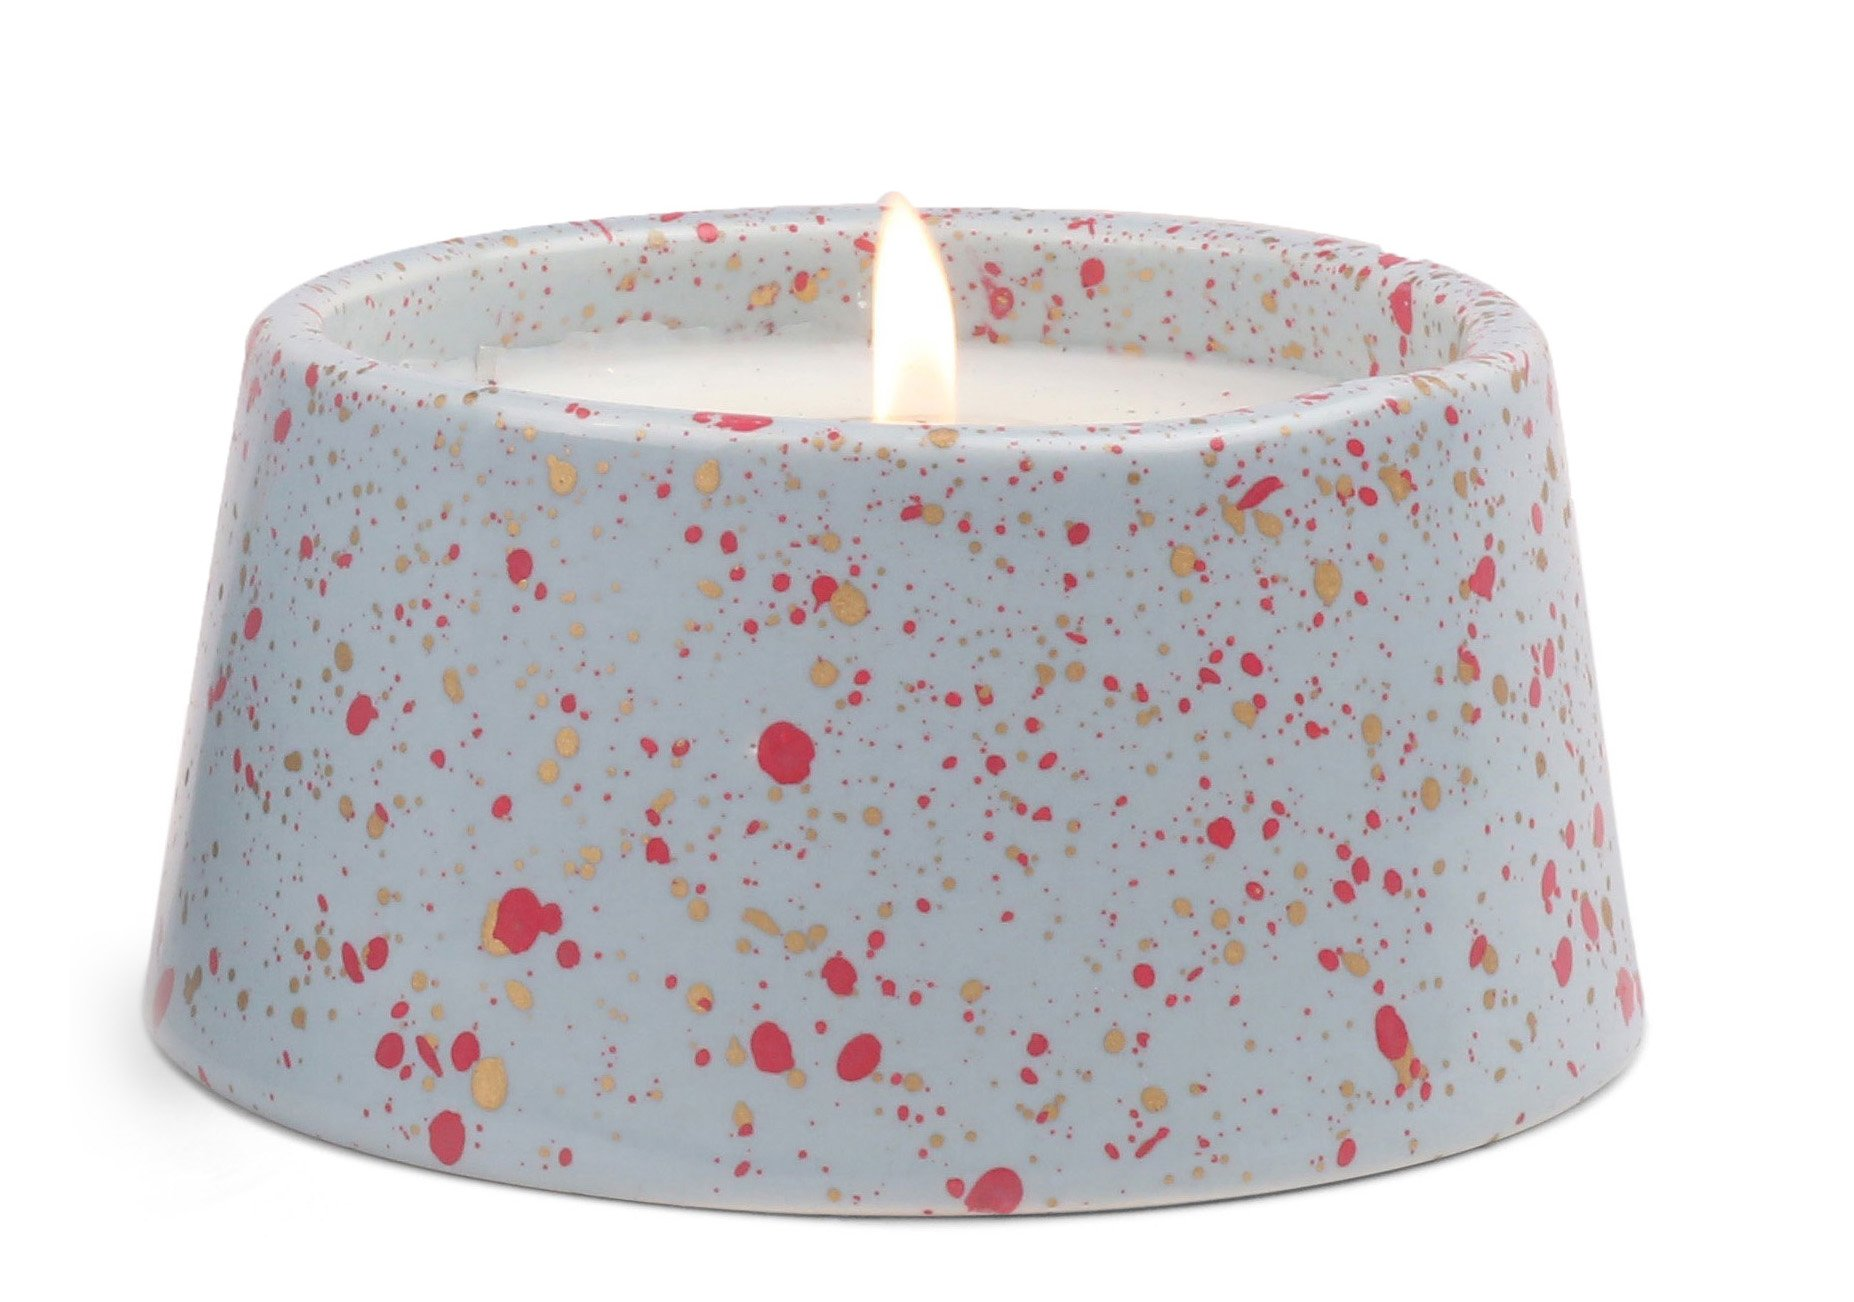 Paddywax Candles Confetti Collection Scented Soy Wax Blend, 5 oz, Cactus Flower